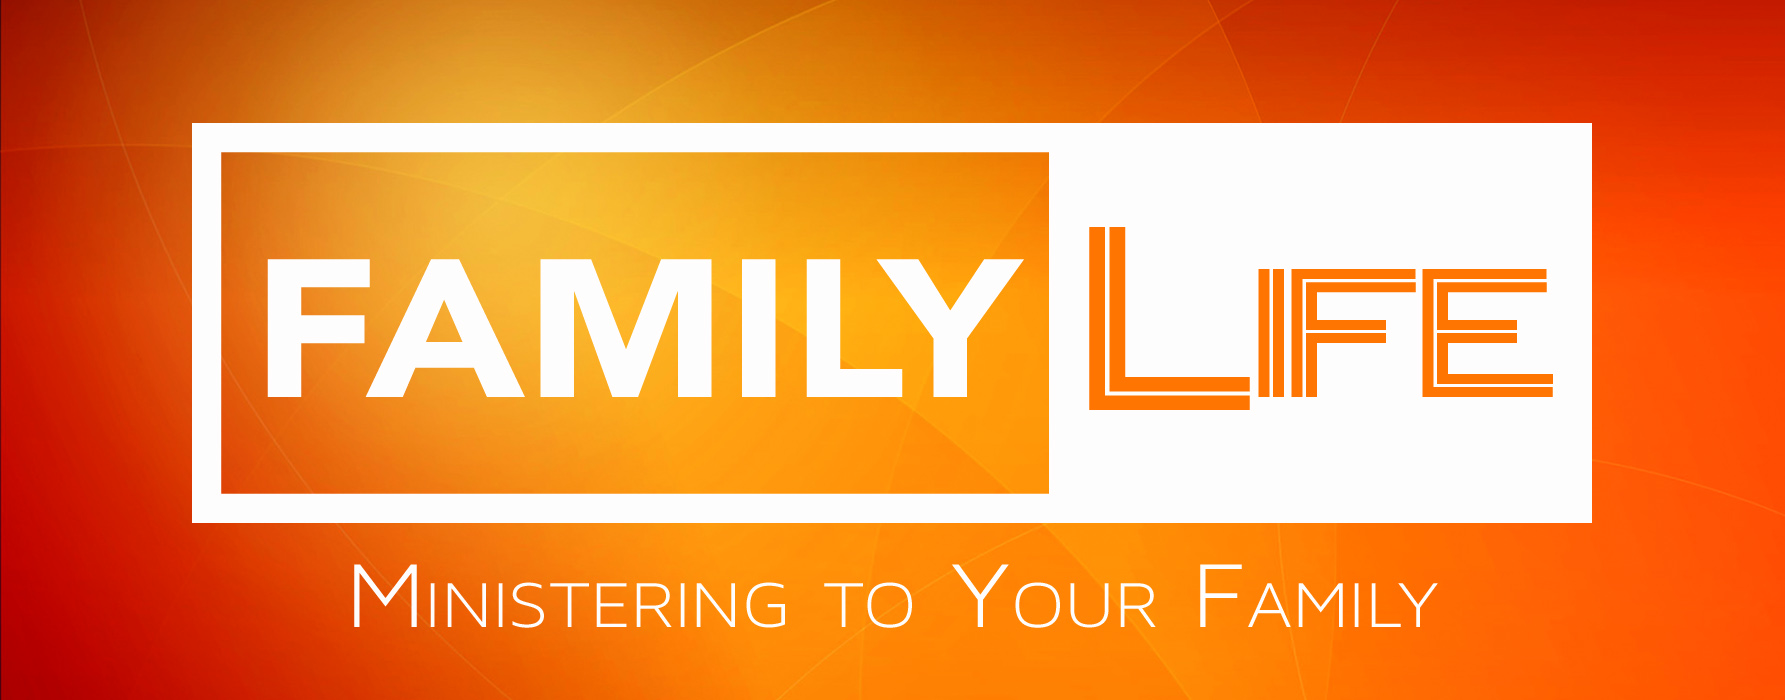 Family Life At Evident Life Church | Evident Life Church